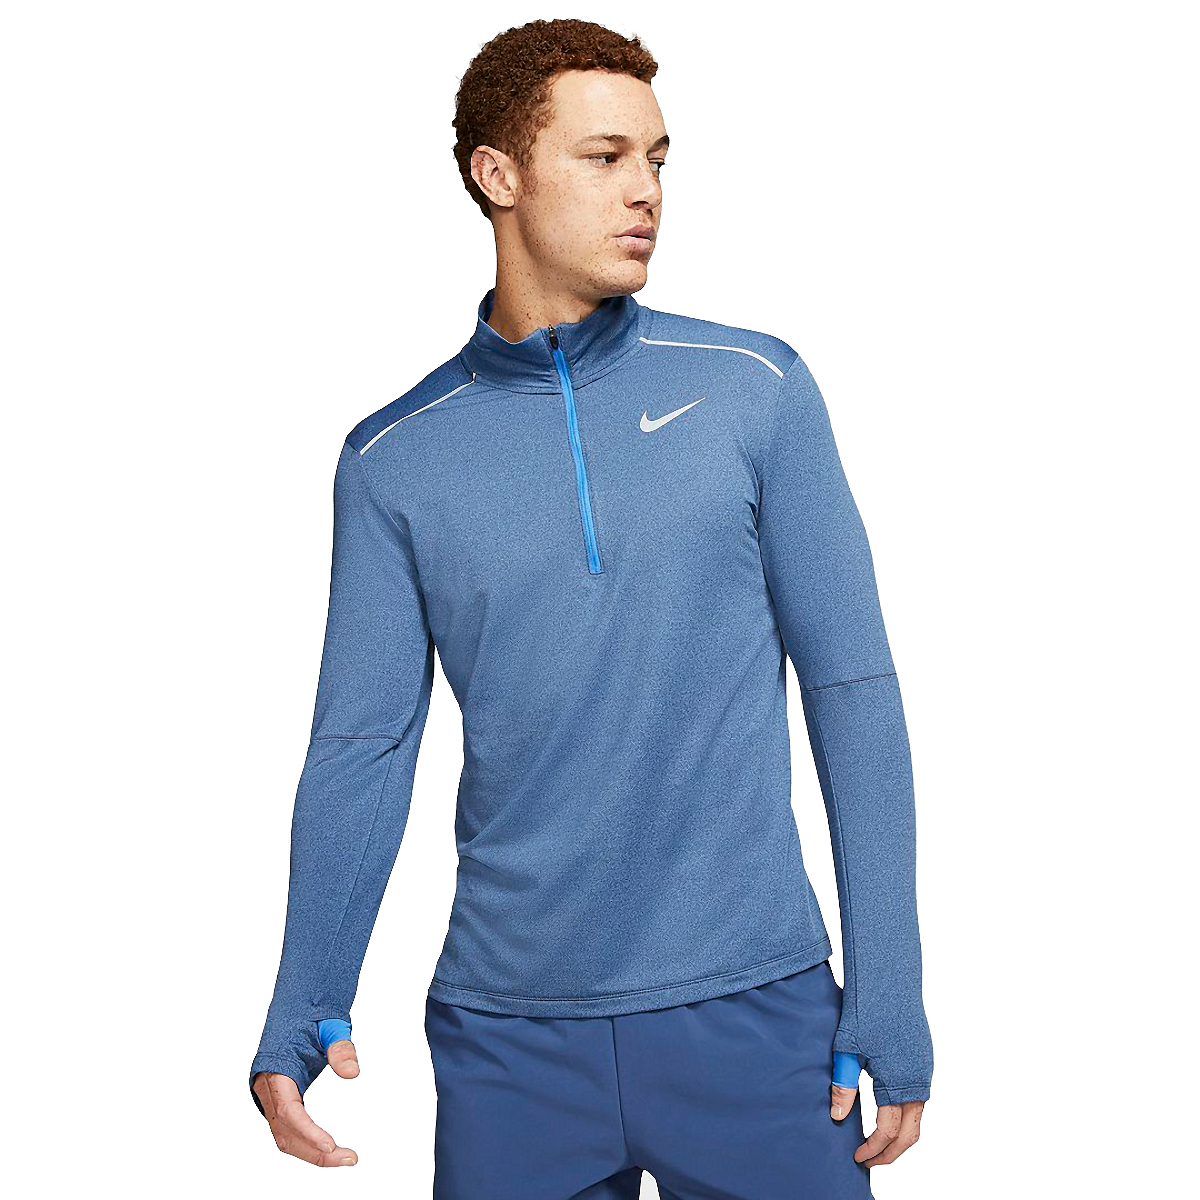 Men's Nike Element Half Zip 3.0, , large, image 1